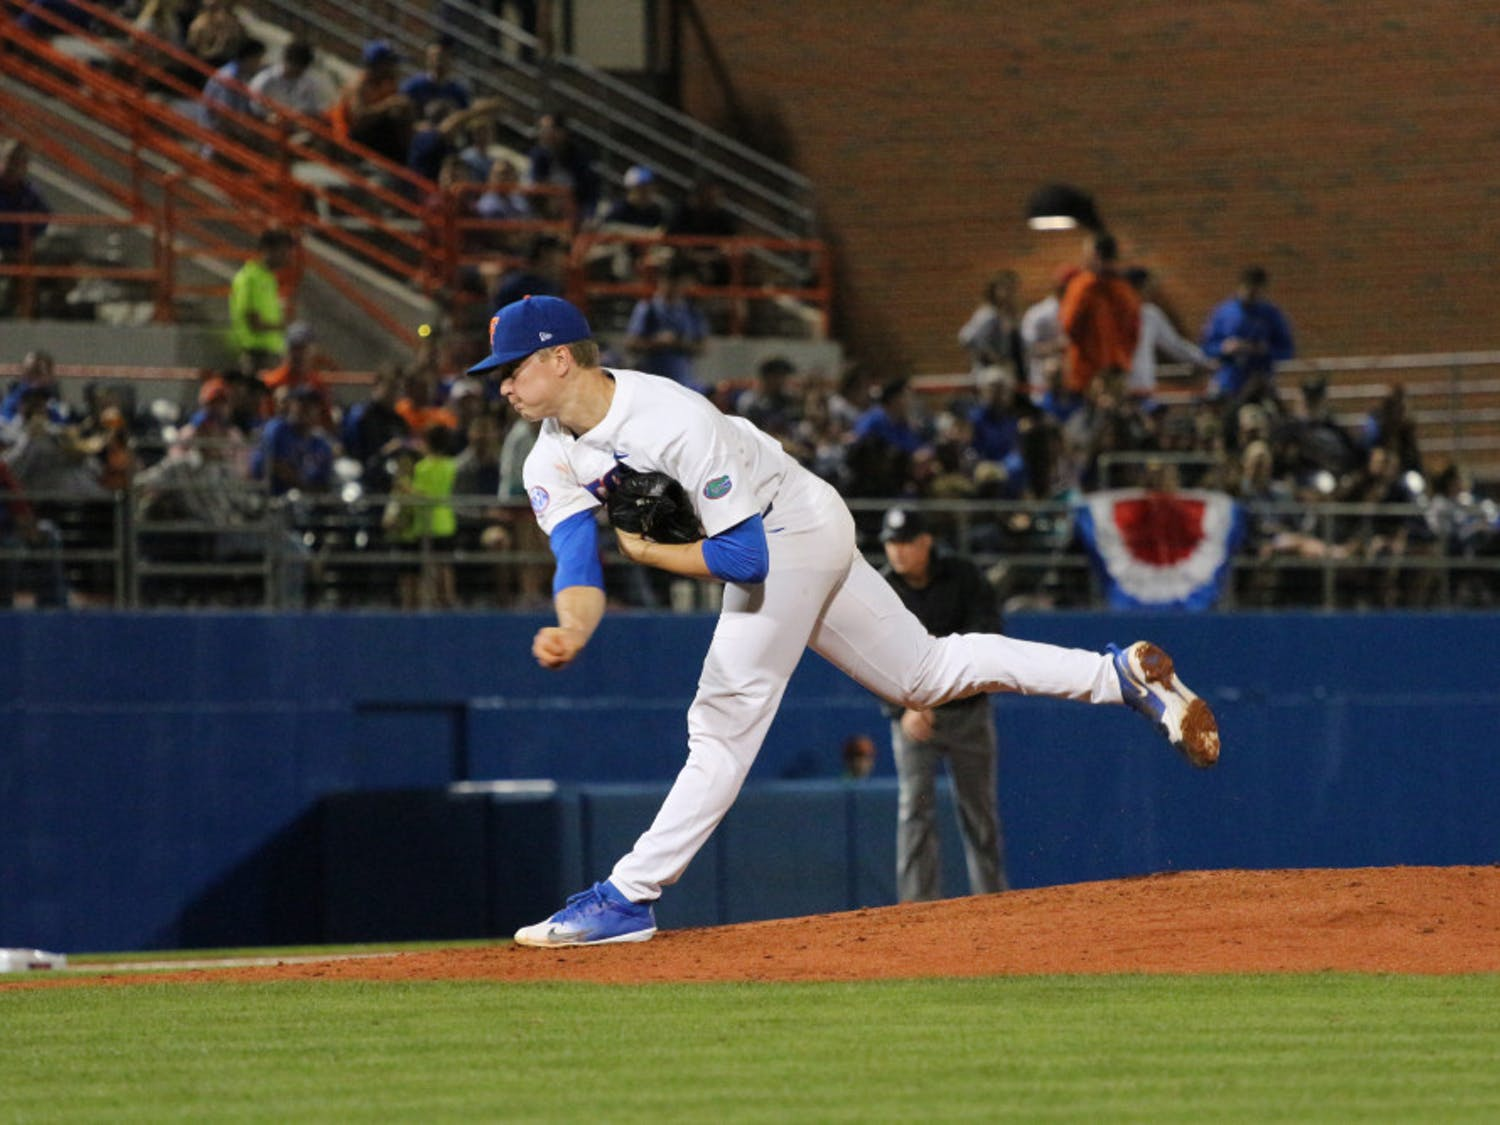 UF starting pitcher Brady Singer picked up the win in his final home game as a Gator. The junior was drafted 18th overall by the Kansas City Royals in the MLB Draft on Monday.